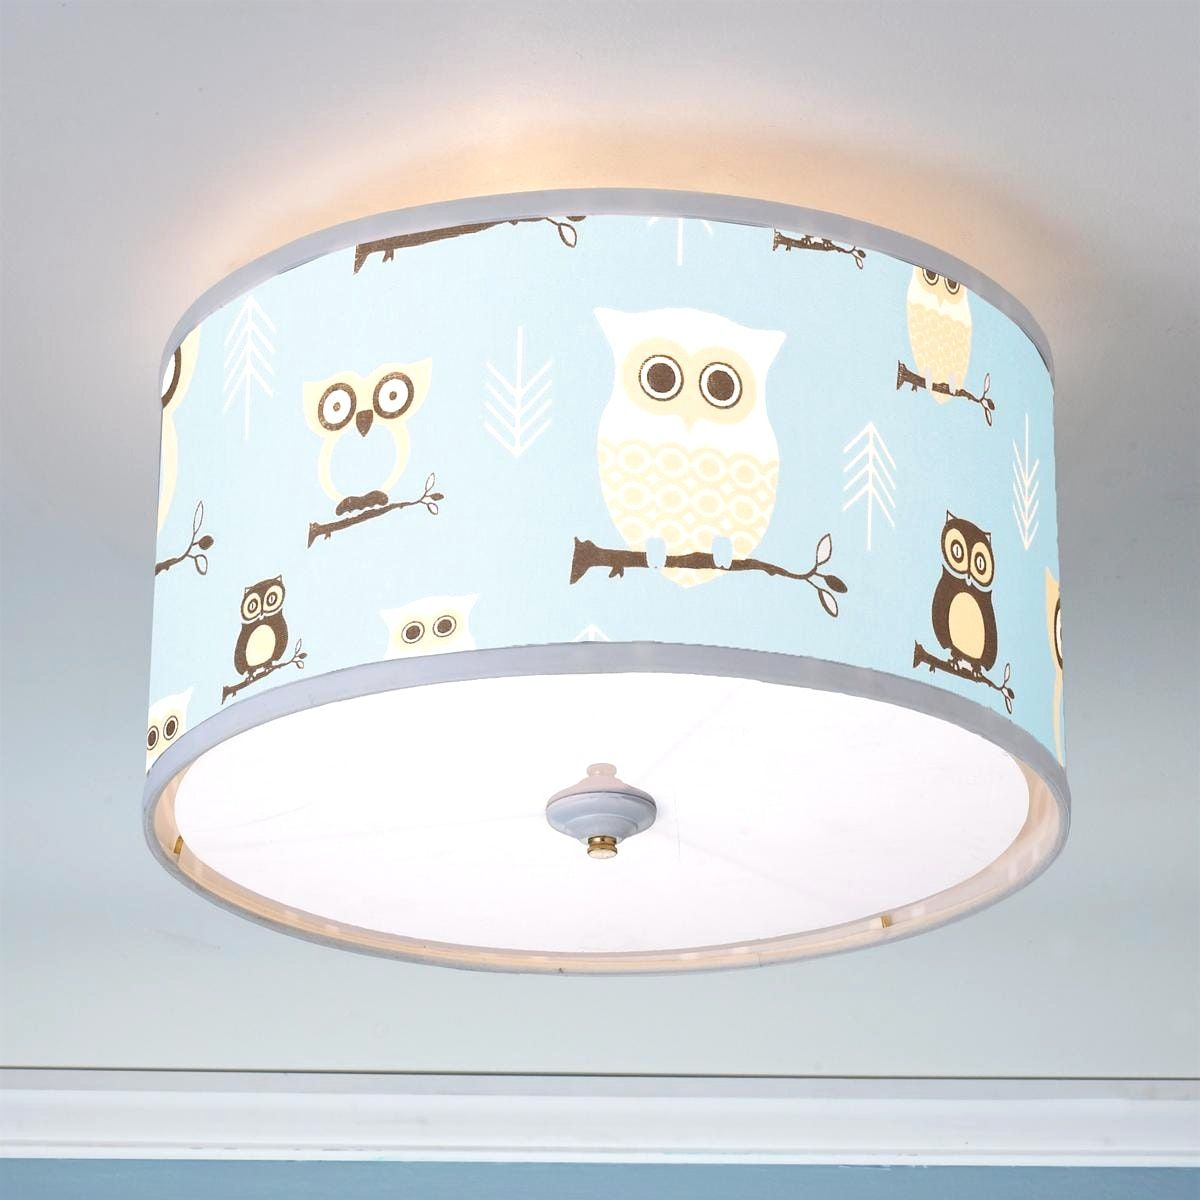 Baby nursery ceiling light shades httpcreativechairsandtables baby nursery ceiling light shades mozeypictures Image collections